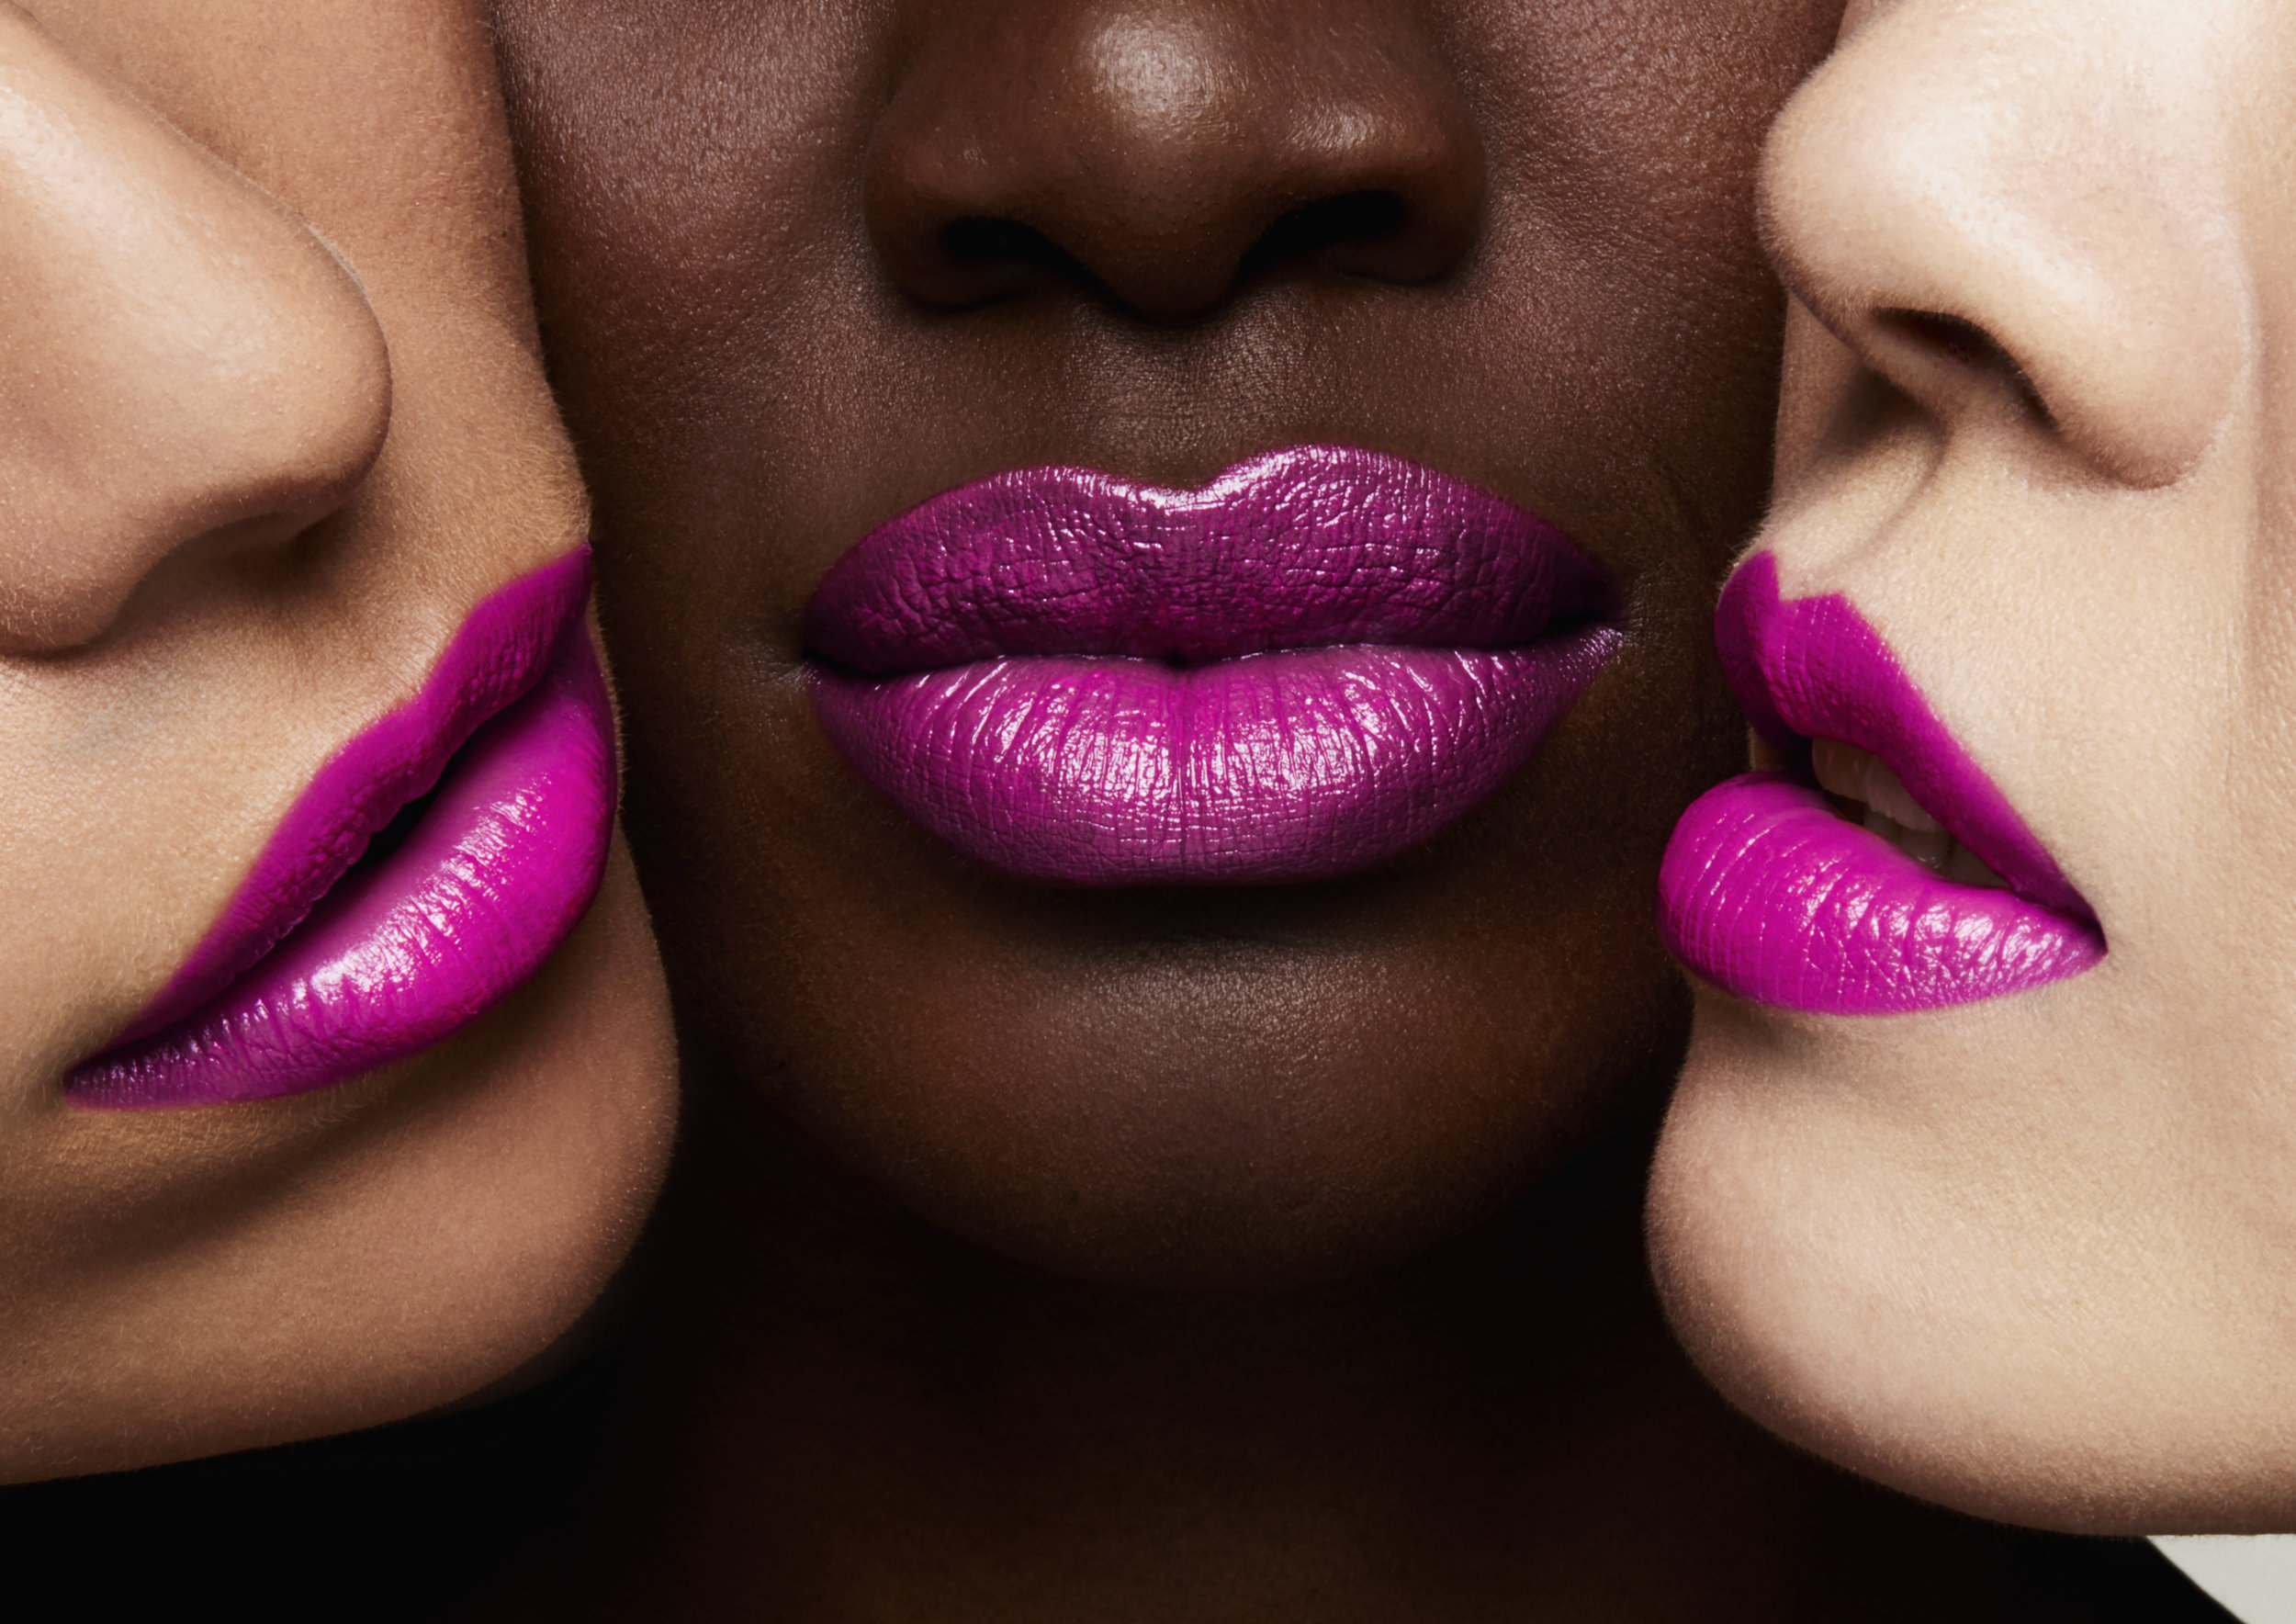 BeautyPhotography_TomFordBeauty_LipstickEditorial_By_BriJohnson_0002.jpg